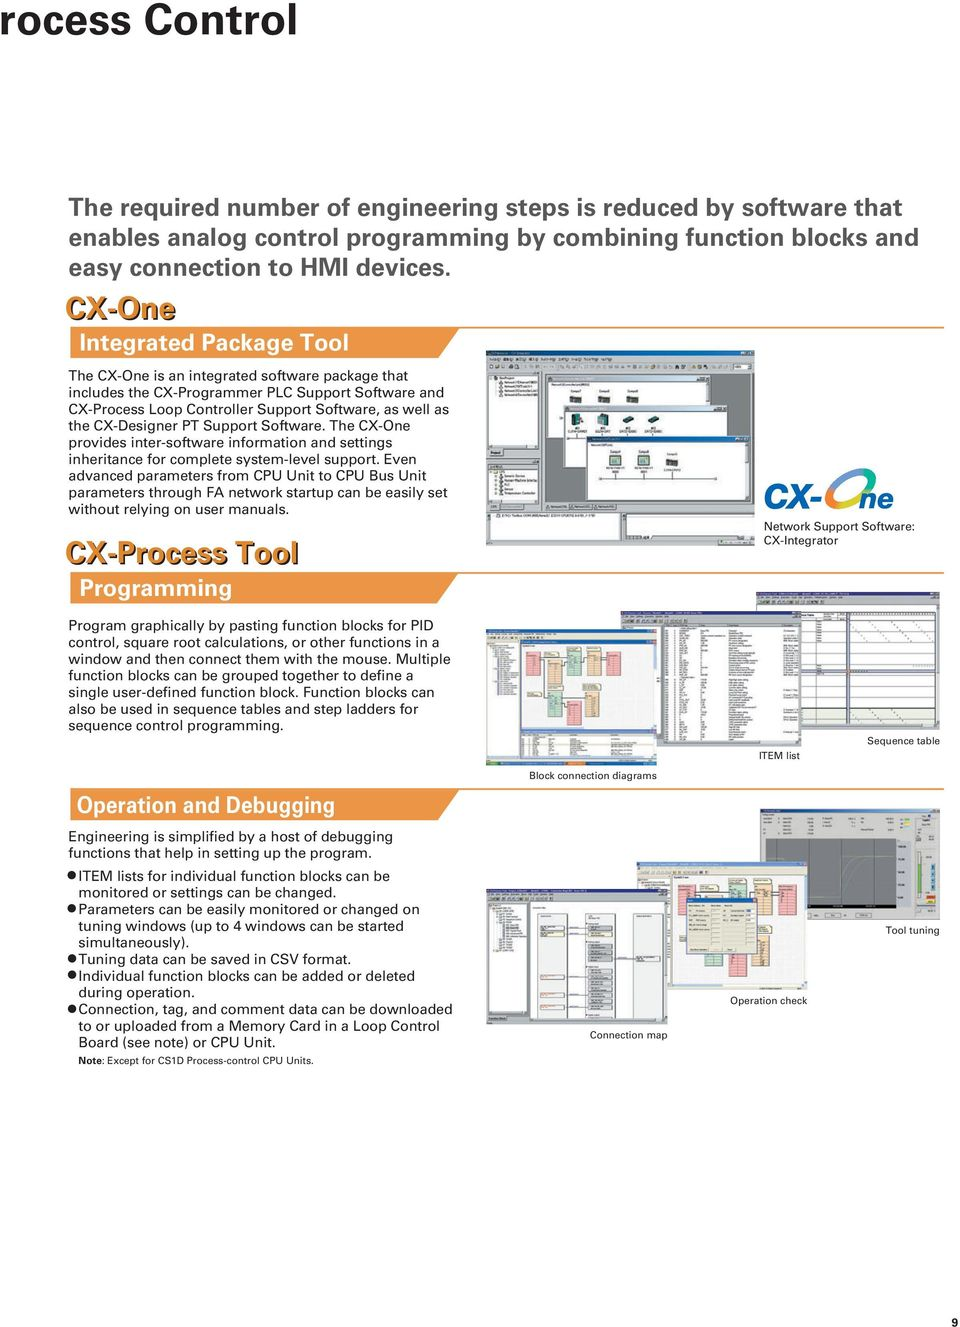 CX-Designer PT Support Software. The CX-One provides inter-software information and settings inheritance for complete system-level support.